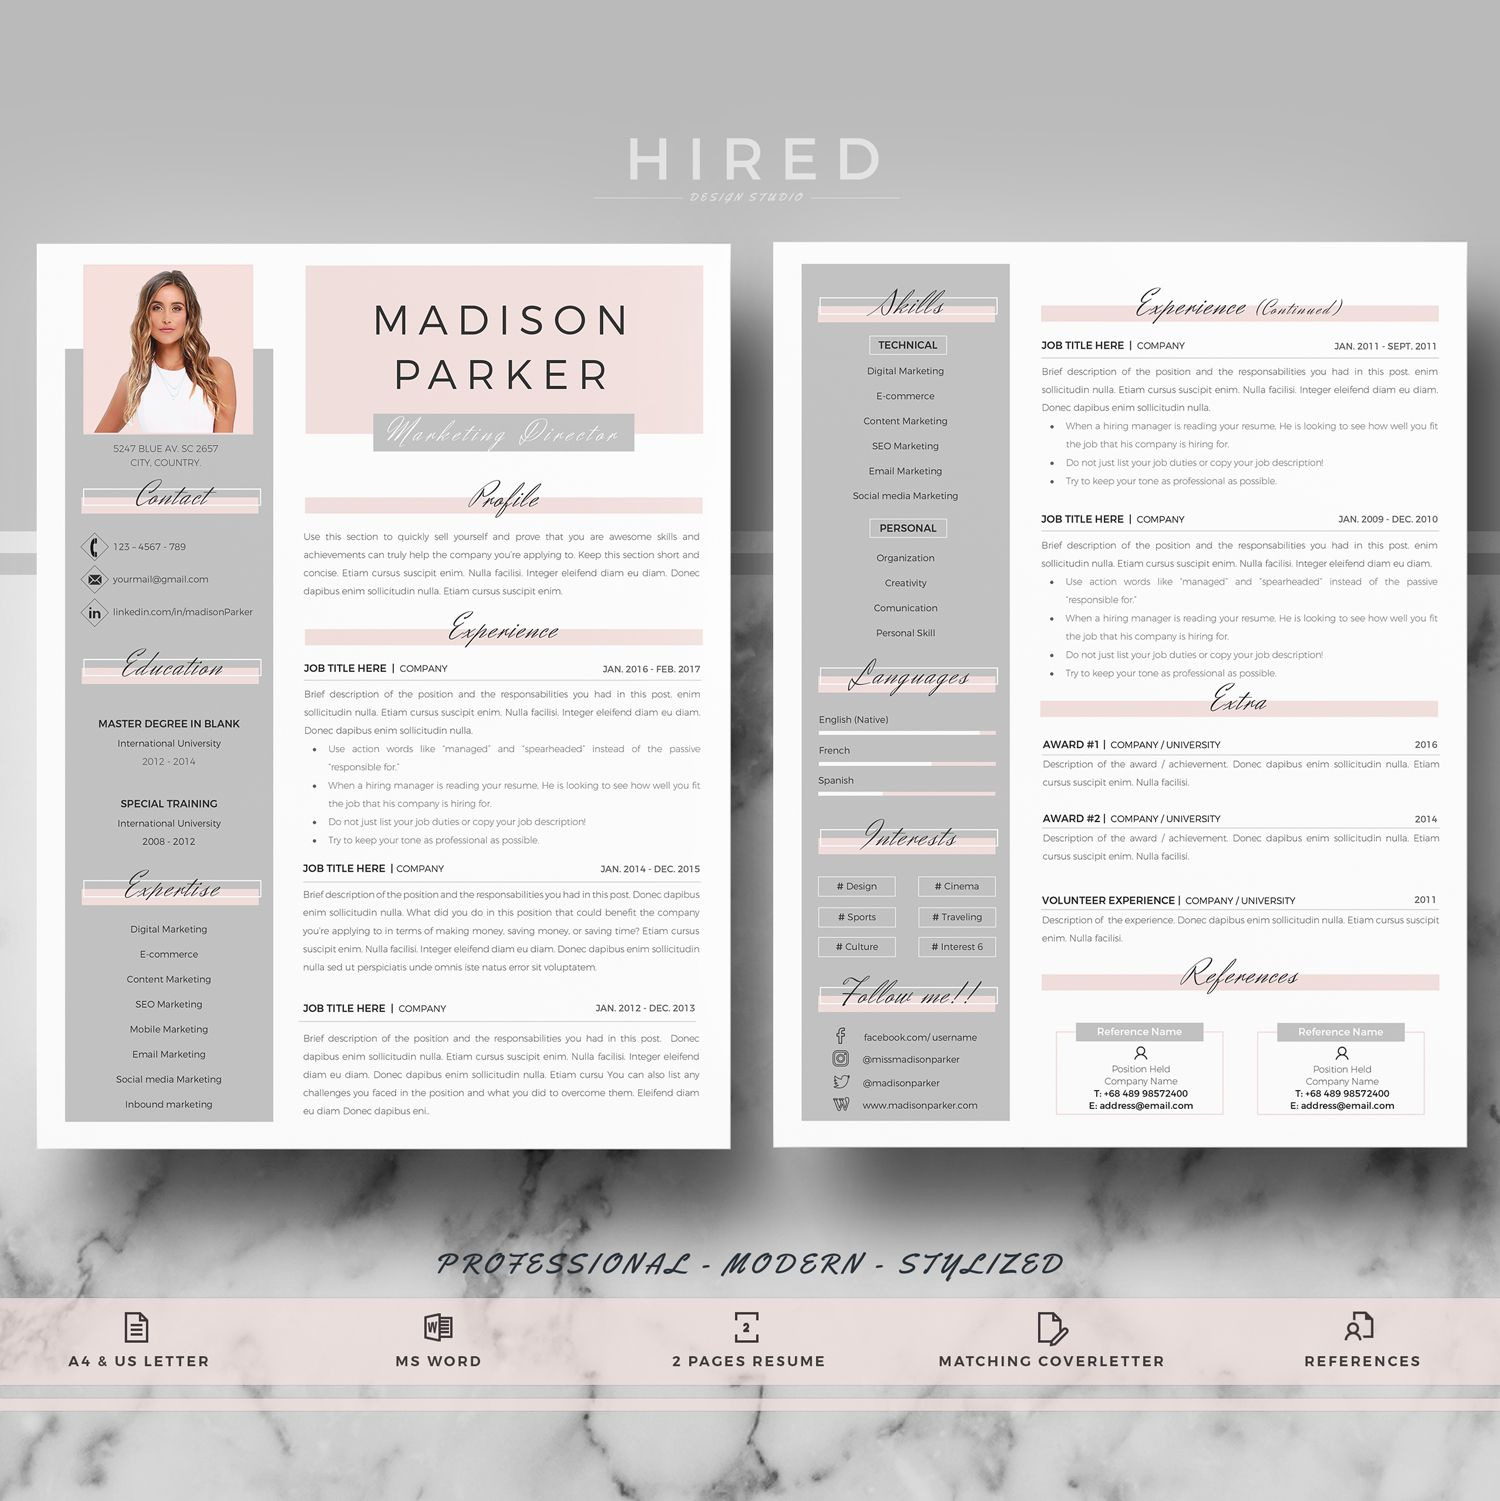 Creative Modern Resume Cv Template For Word And Pages Professional Resume Cv Design Cover Letter References Tips Instant Download Marketing Resume Cover Letter For Resume Resume Template Professional